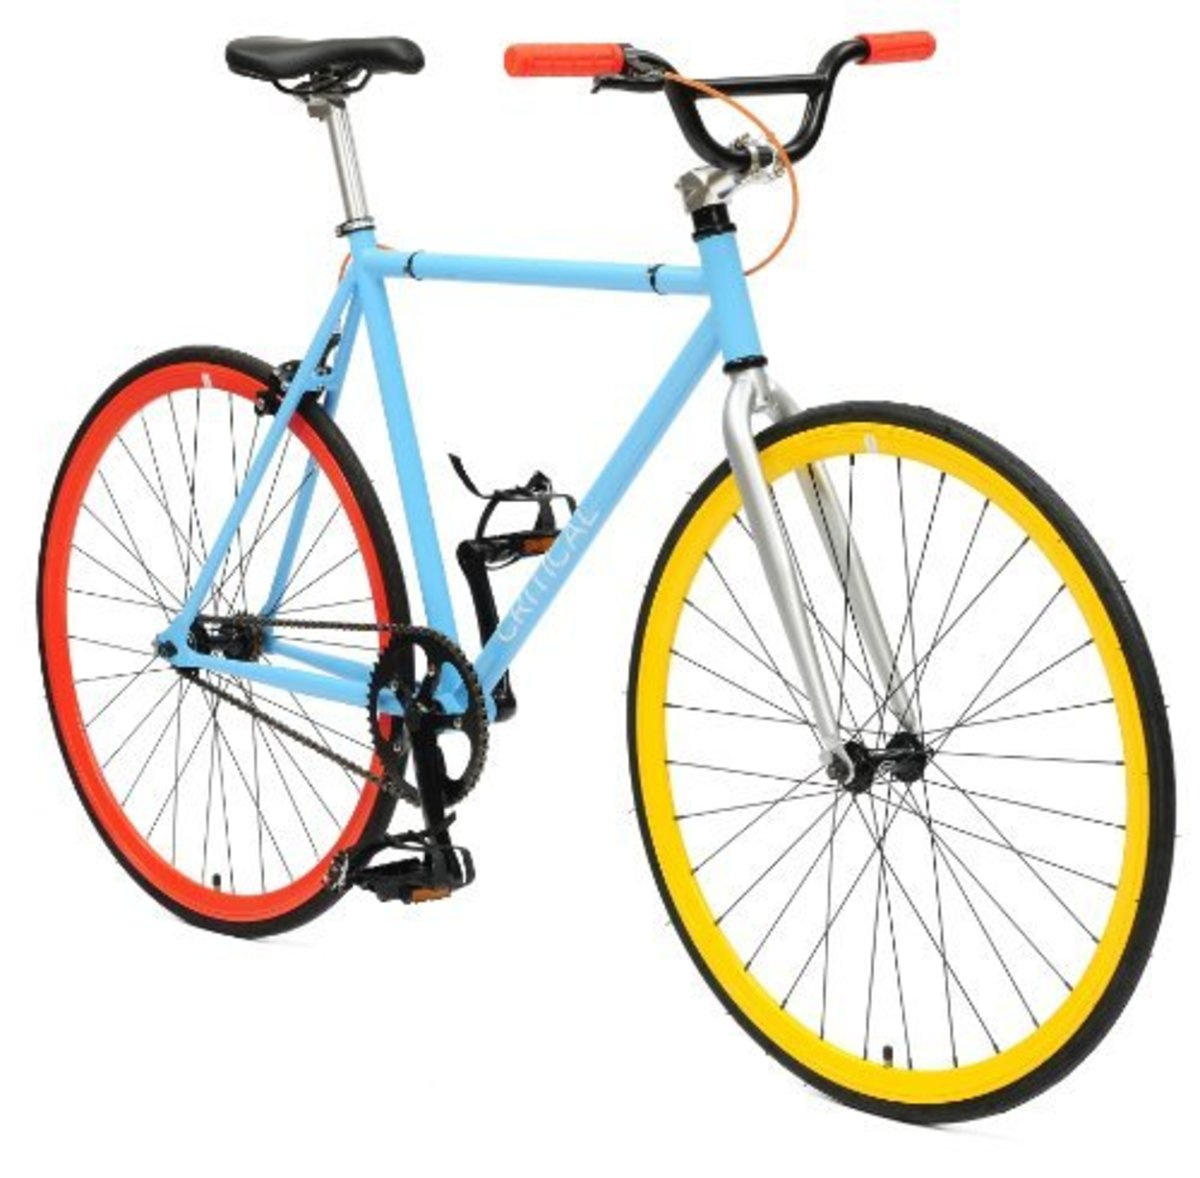 Top 10 Best Fixed-Gear Bikes Under $500: Budget Fixie ...